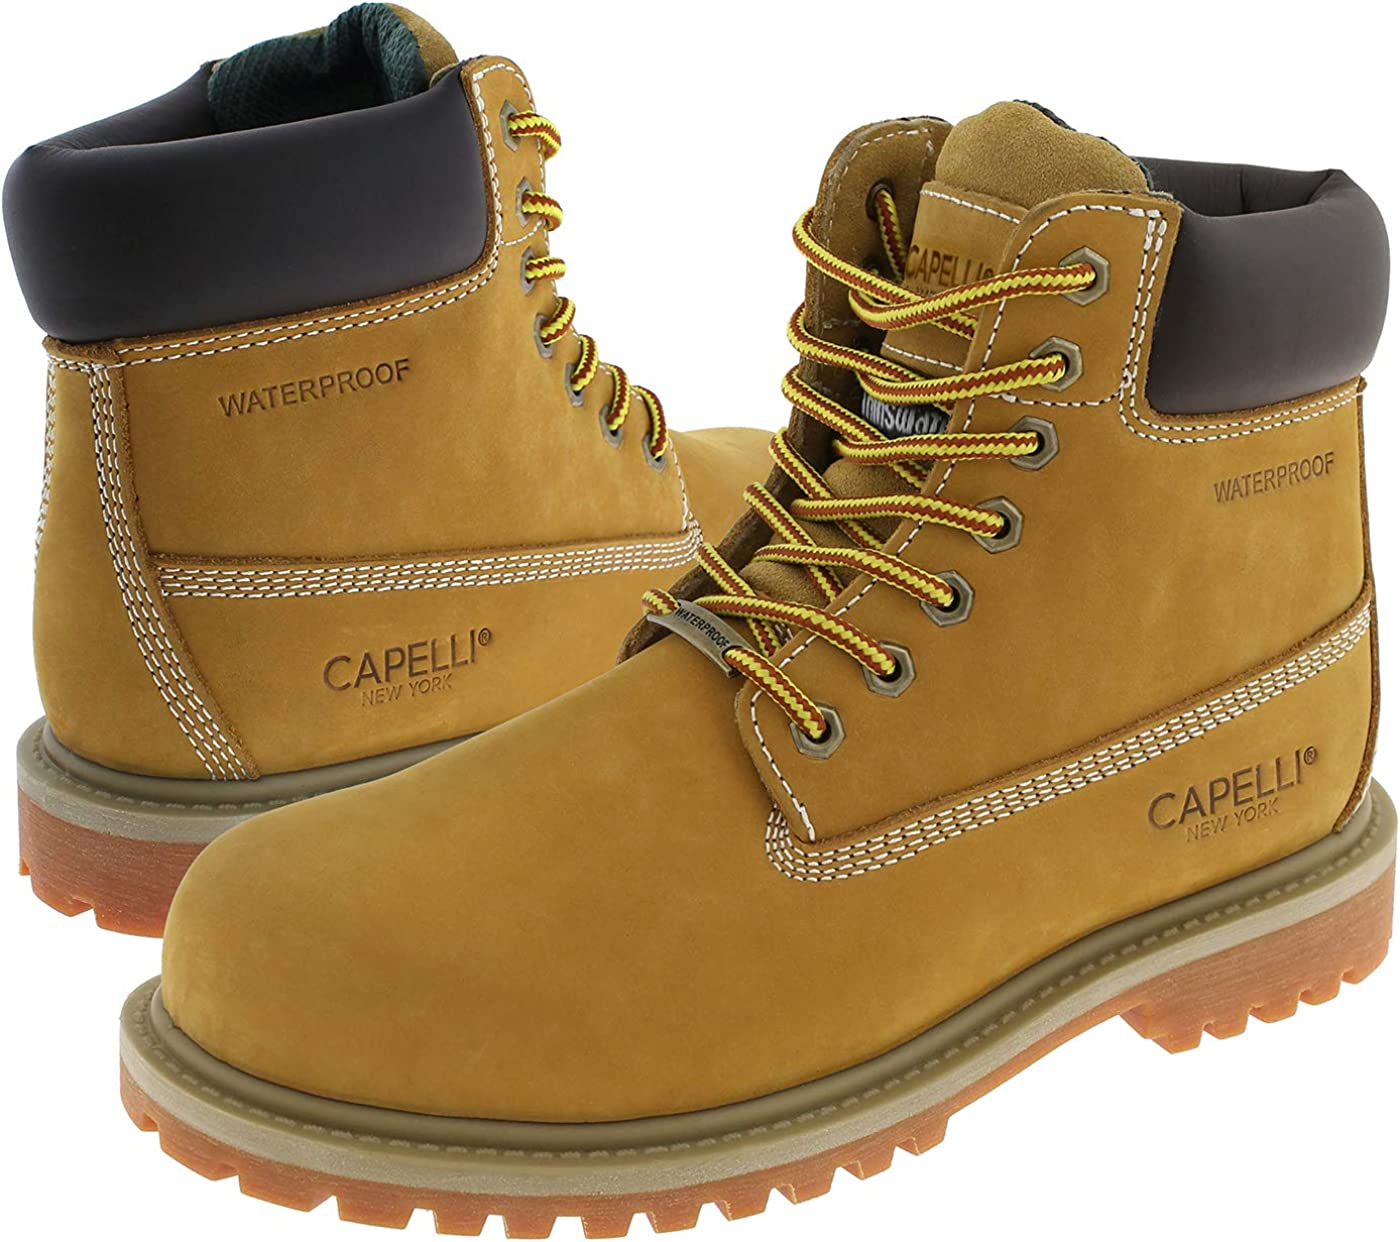 Capelli New York Mens Waterproof Nubuck Leather Work Boot with Memory Foam Insole